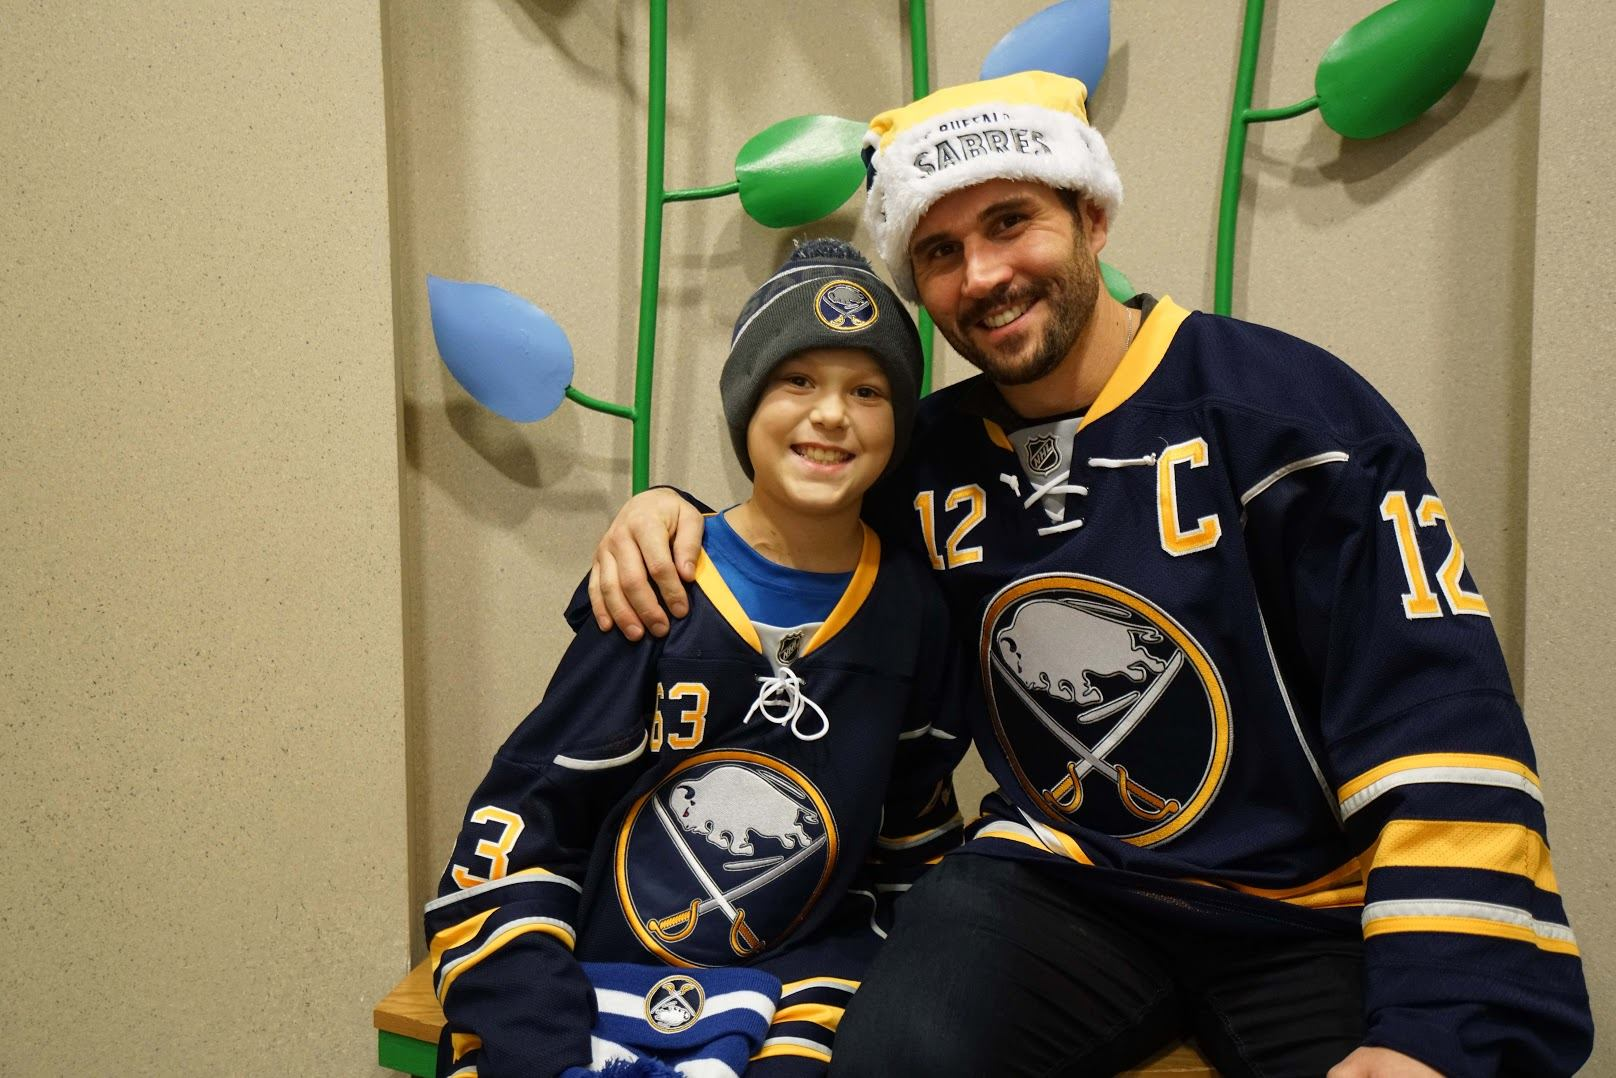 Sabres captain Brian Gionta meets with a young patient during a visit to RPCI on December 16, 2015.